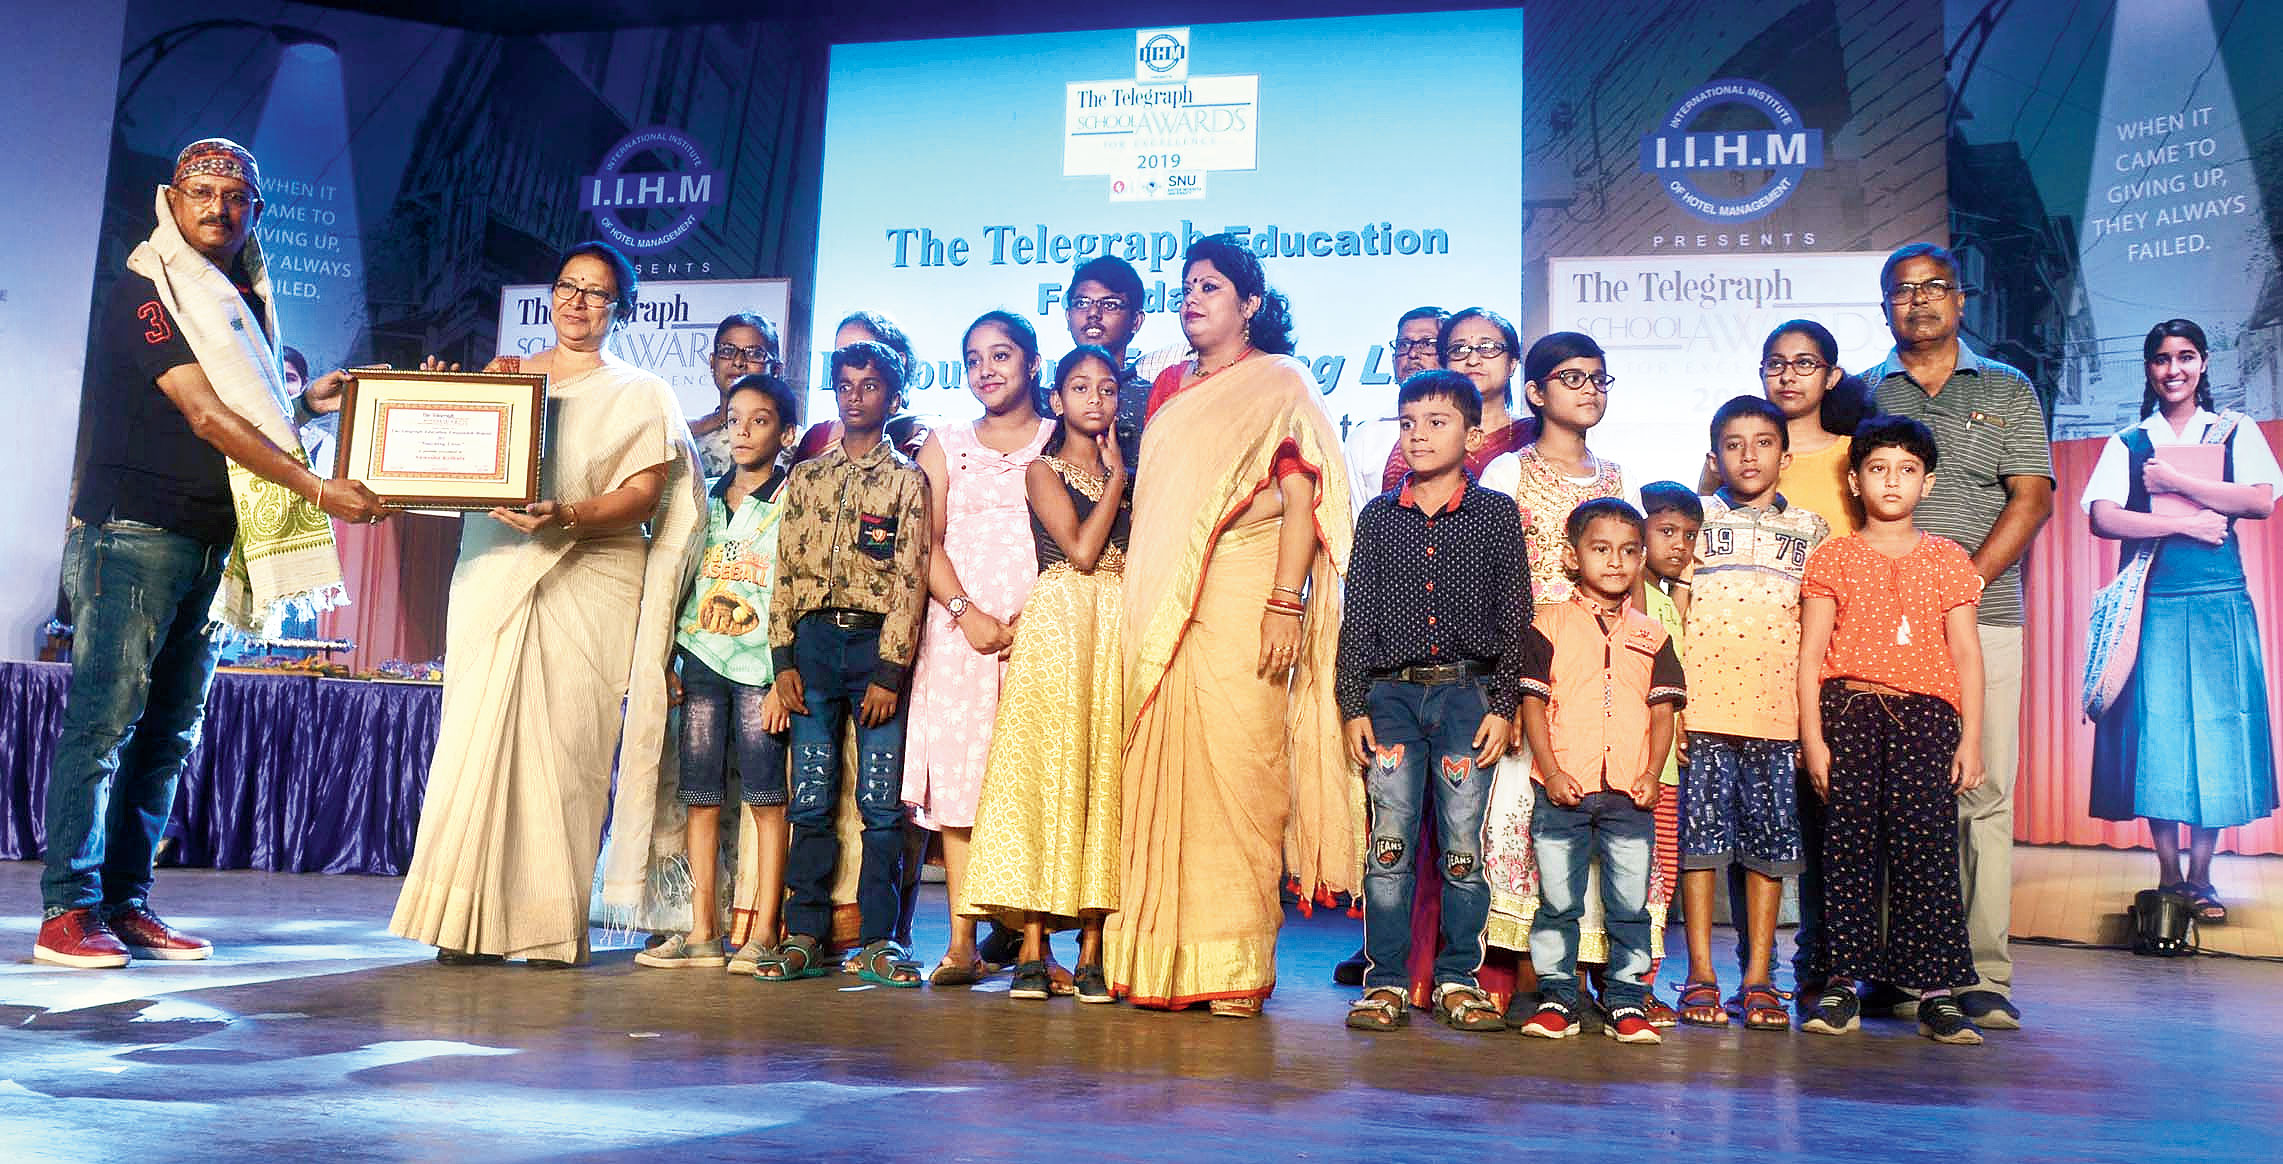 Partha Kar Chowdhury, a pool car driver who collects unsold food from restaurants and distributes them to patients of three government hospitals, hands over The Education Foundation Honour for 'Touching Lives' to teachers and students of Anwesha Kolkata at The Telegraph School Awards for Excellence.